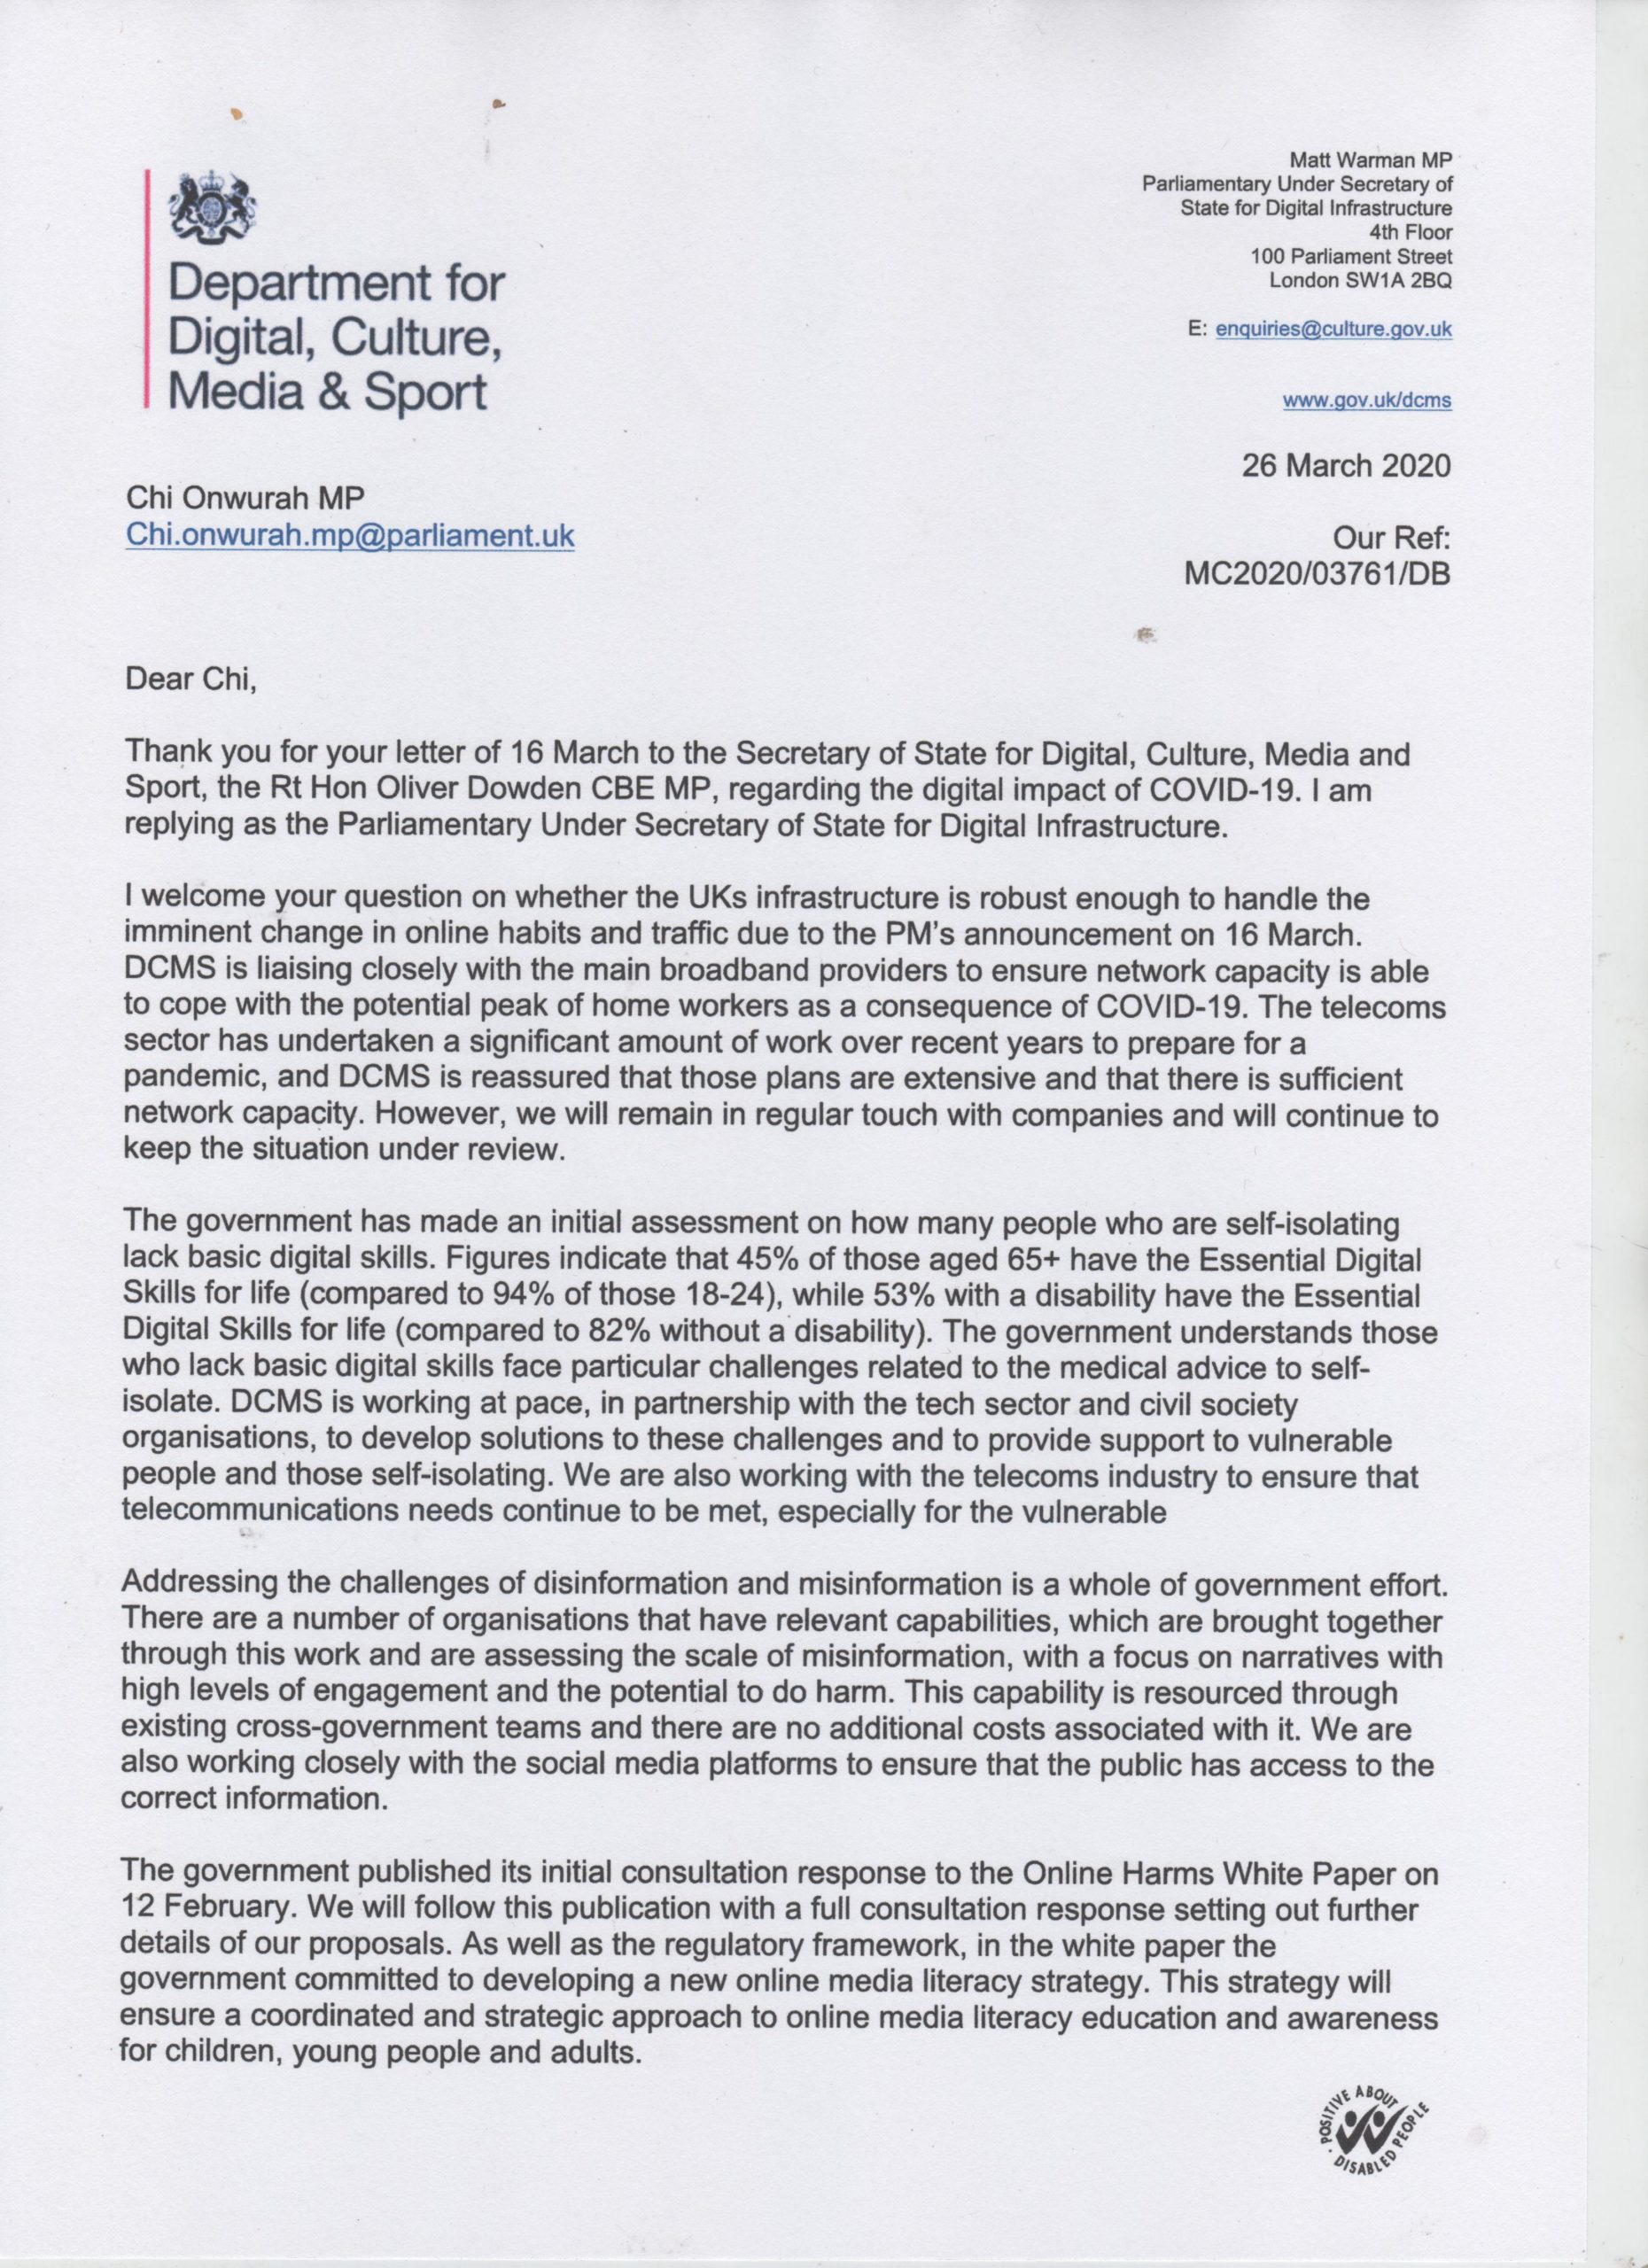 Minister for Digital Infrastructure reply re Corona Virus impact